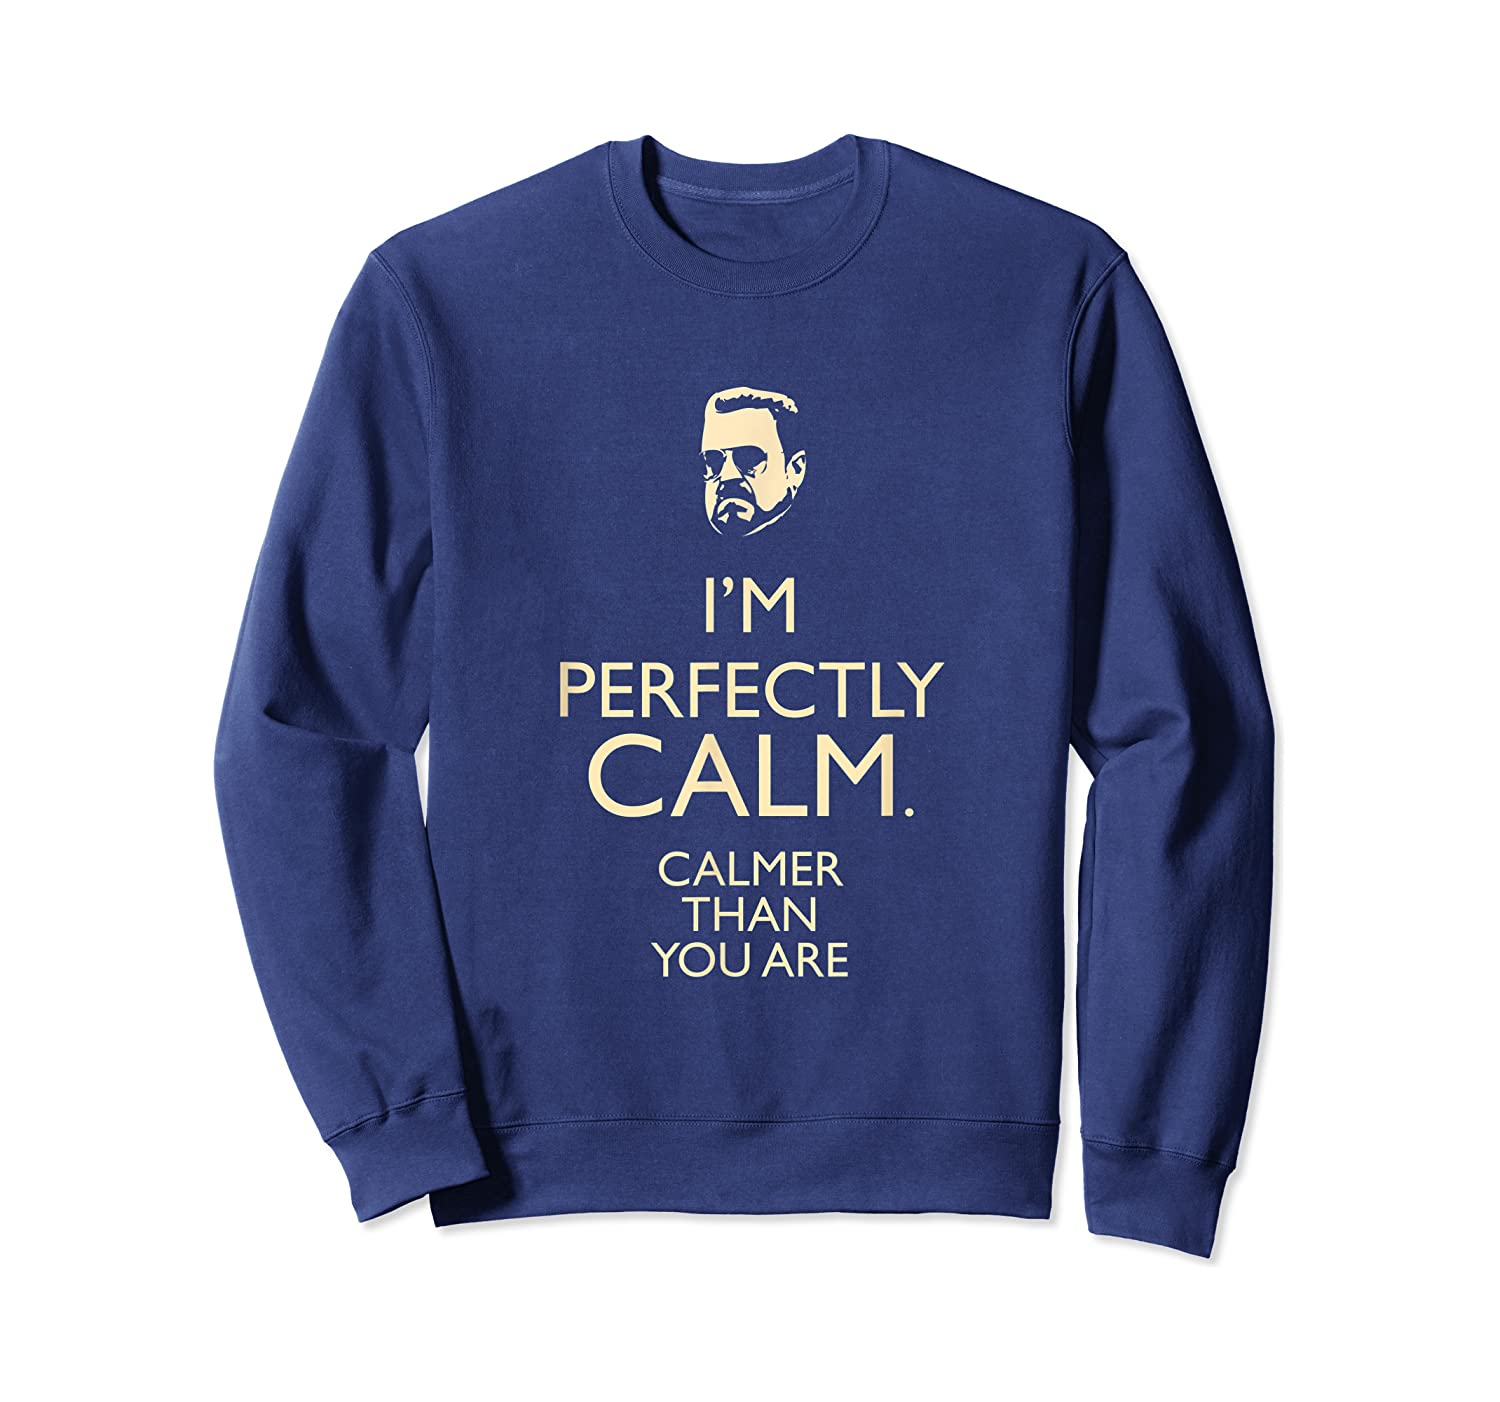 Dudeism Perfectly Calm Shirts Crewneck Sweater